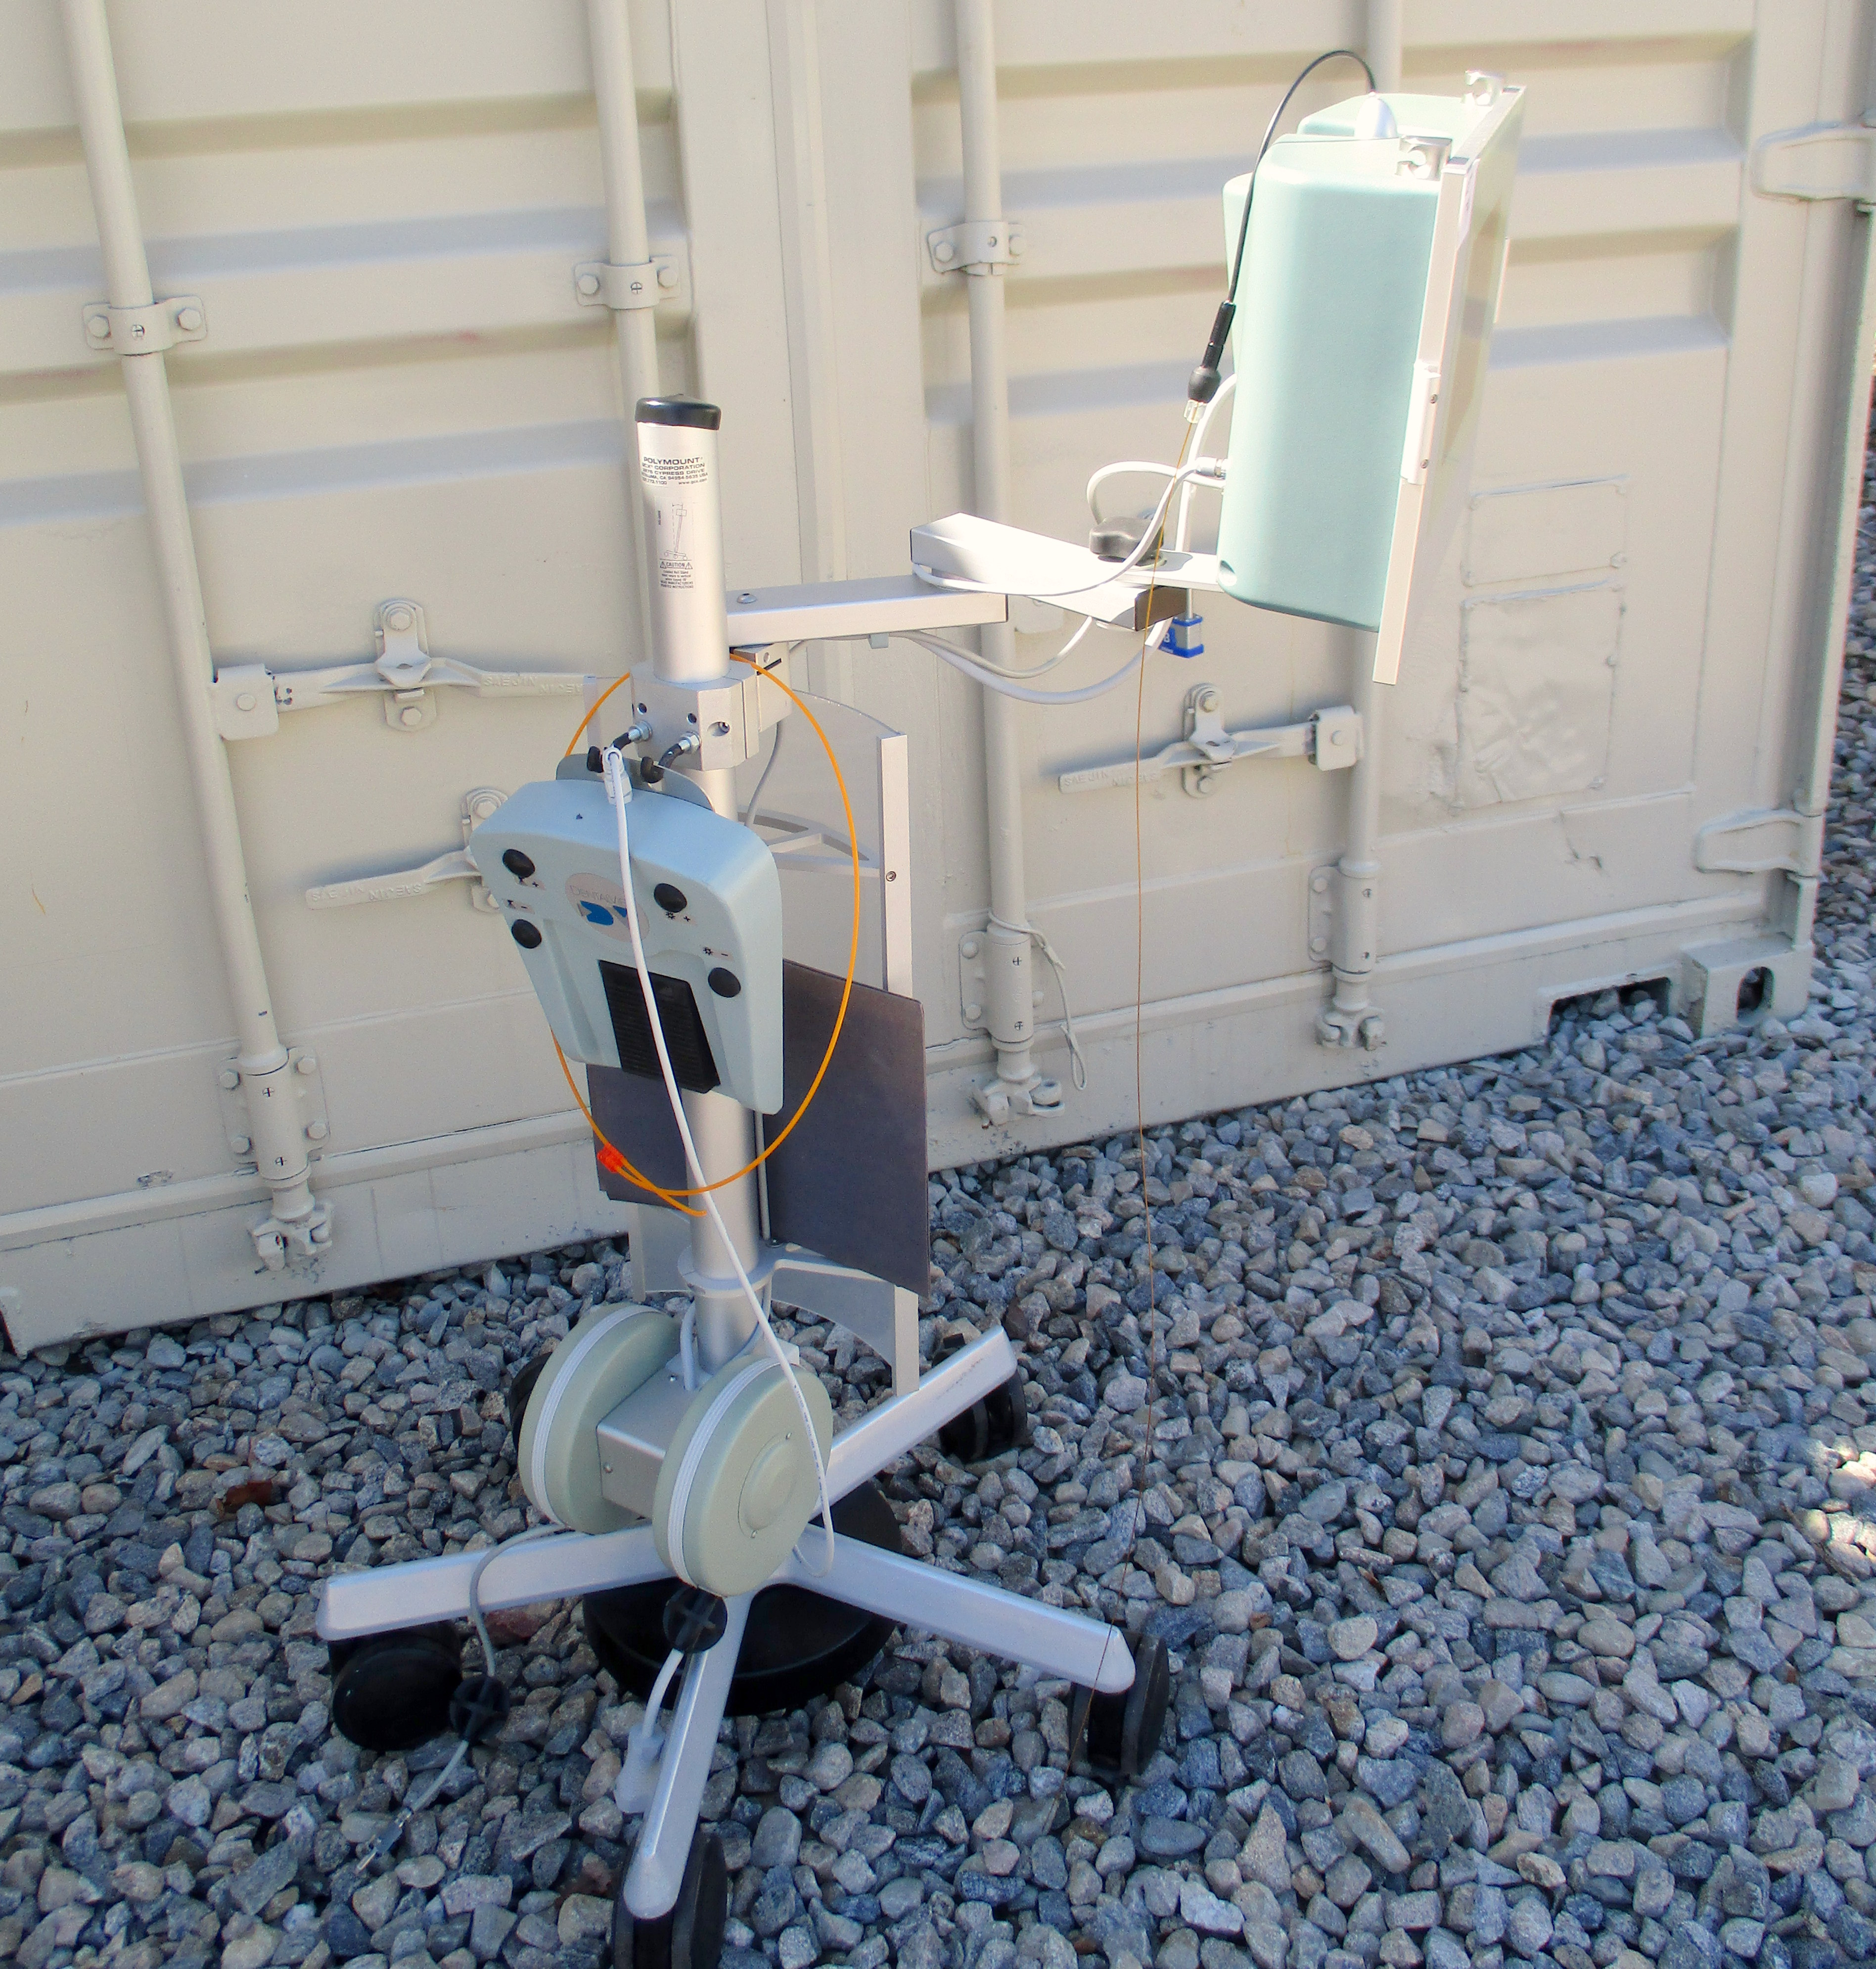 Dental View DV-2 Periscopy Endoscope System on wheeled stand - Image 6 of 14